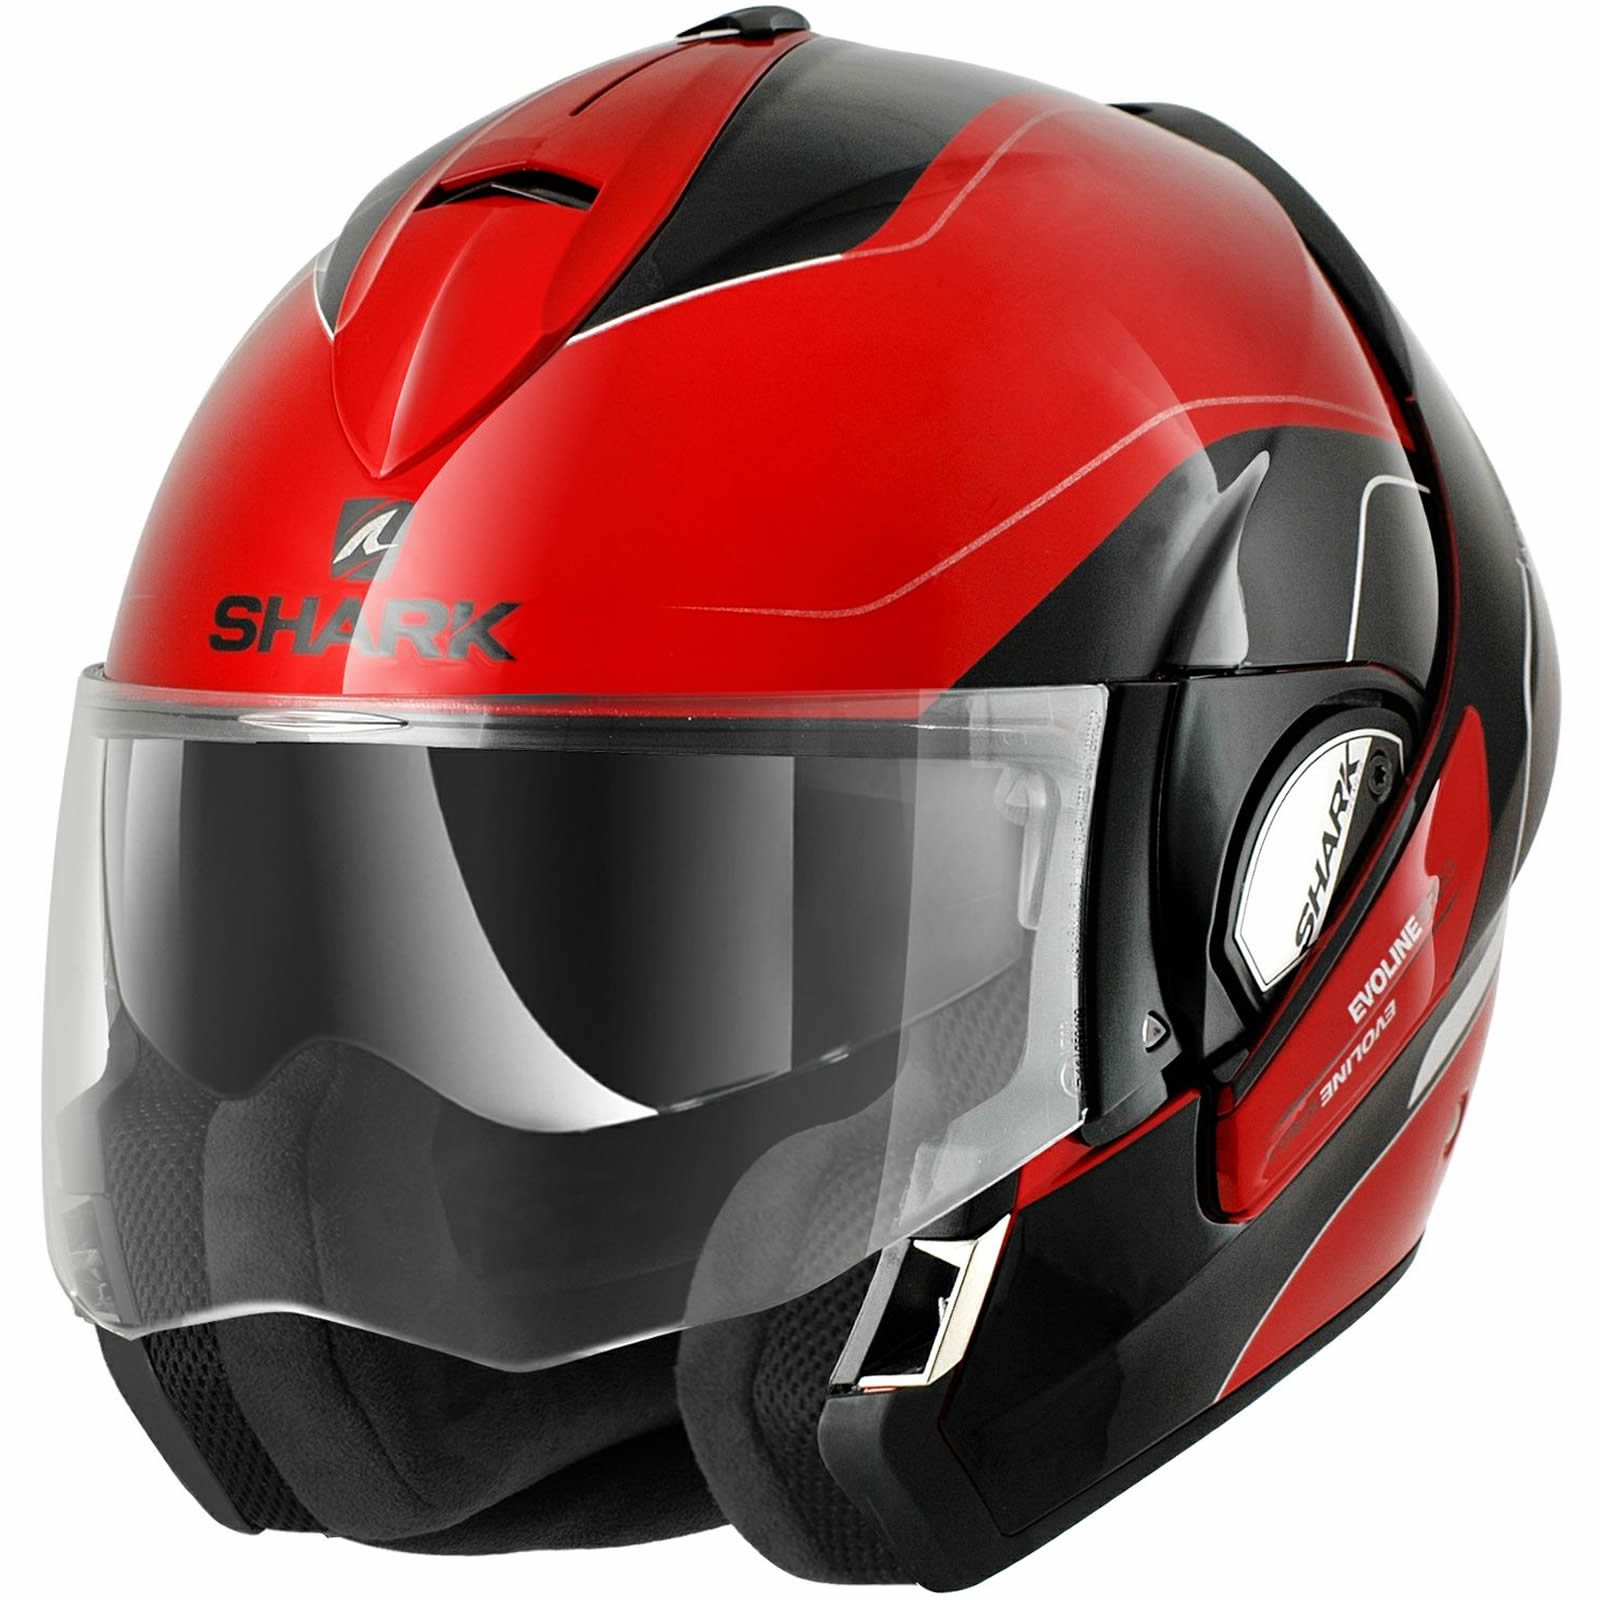 shark evoline series 3 arona klapphelm motorrad rot schwarz 57 58 cm m ebay. Black Bedroom Furniture Sets. Home Design Ideas